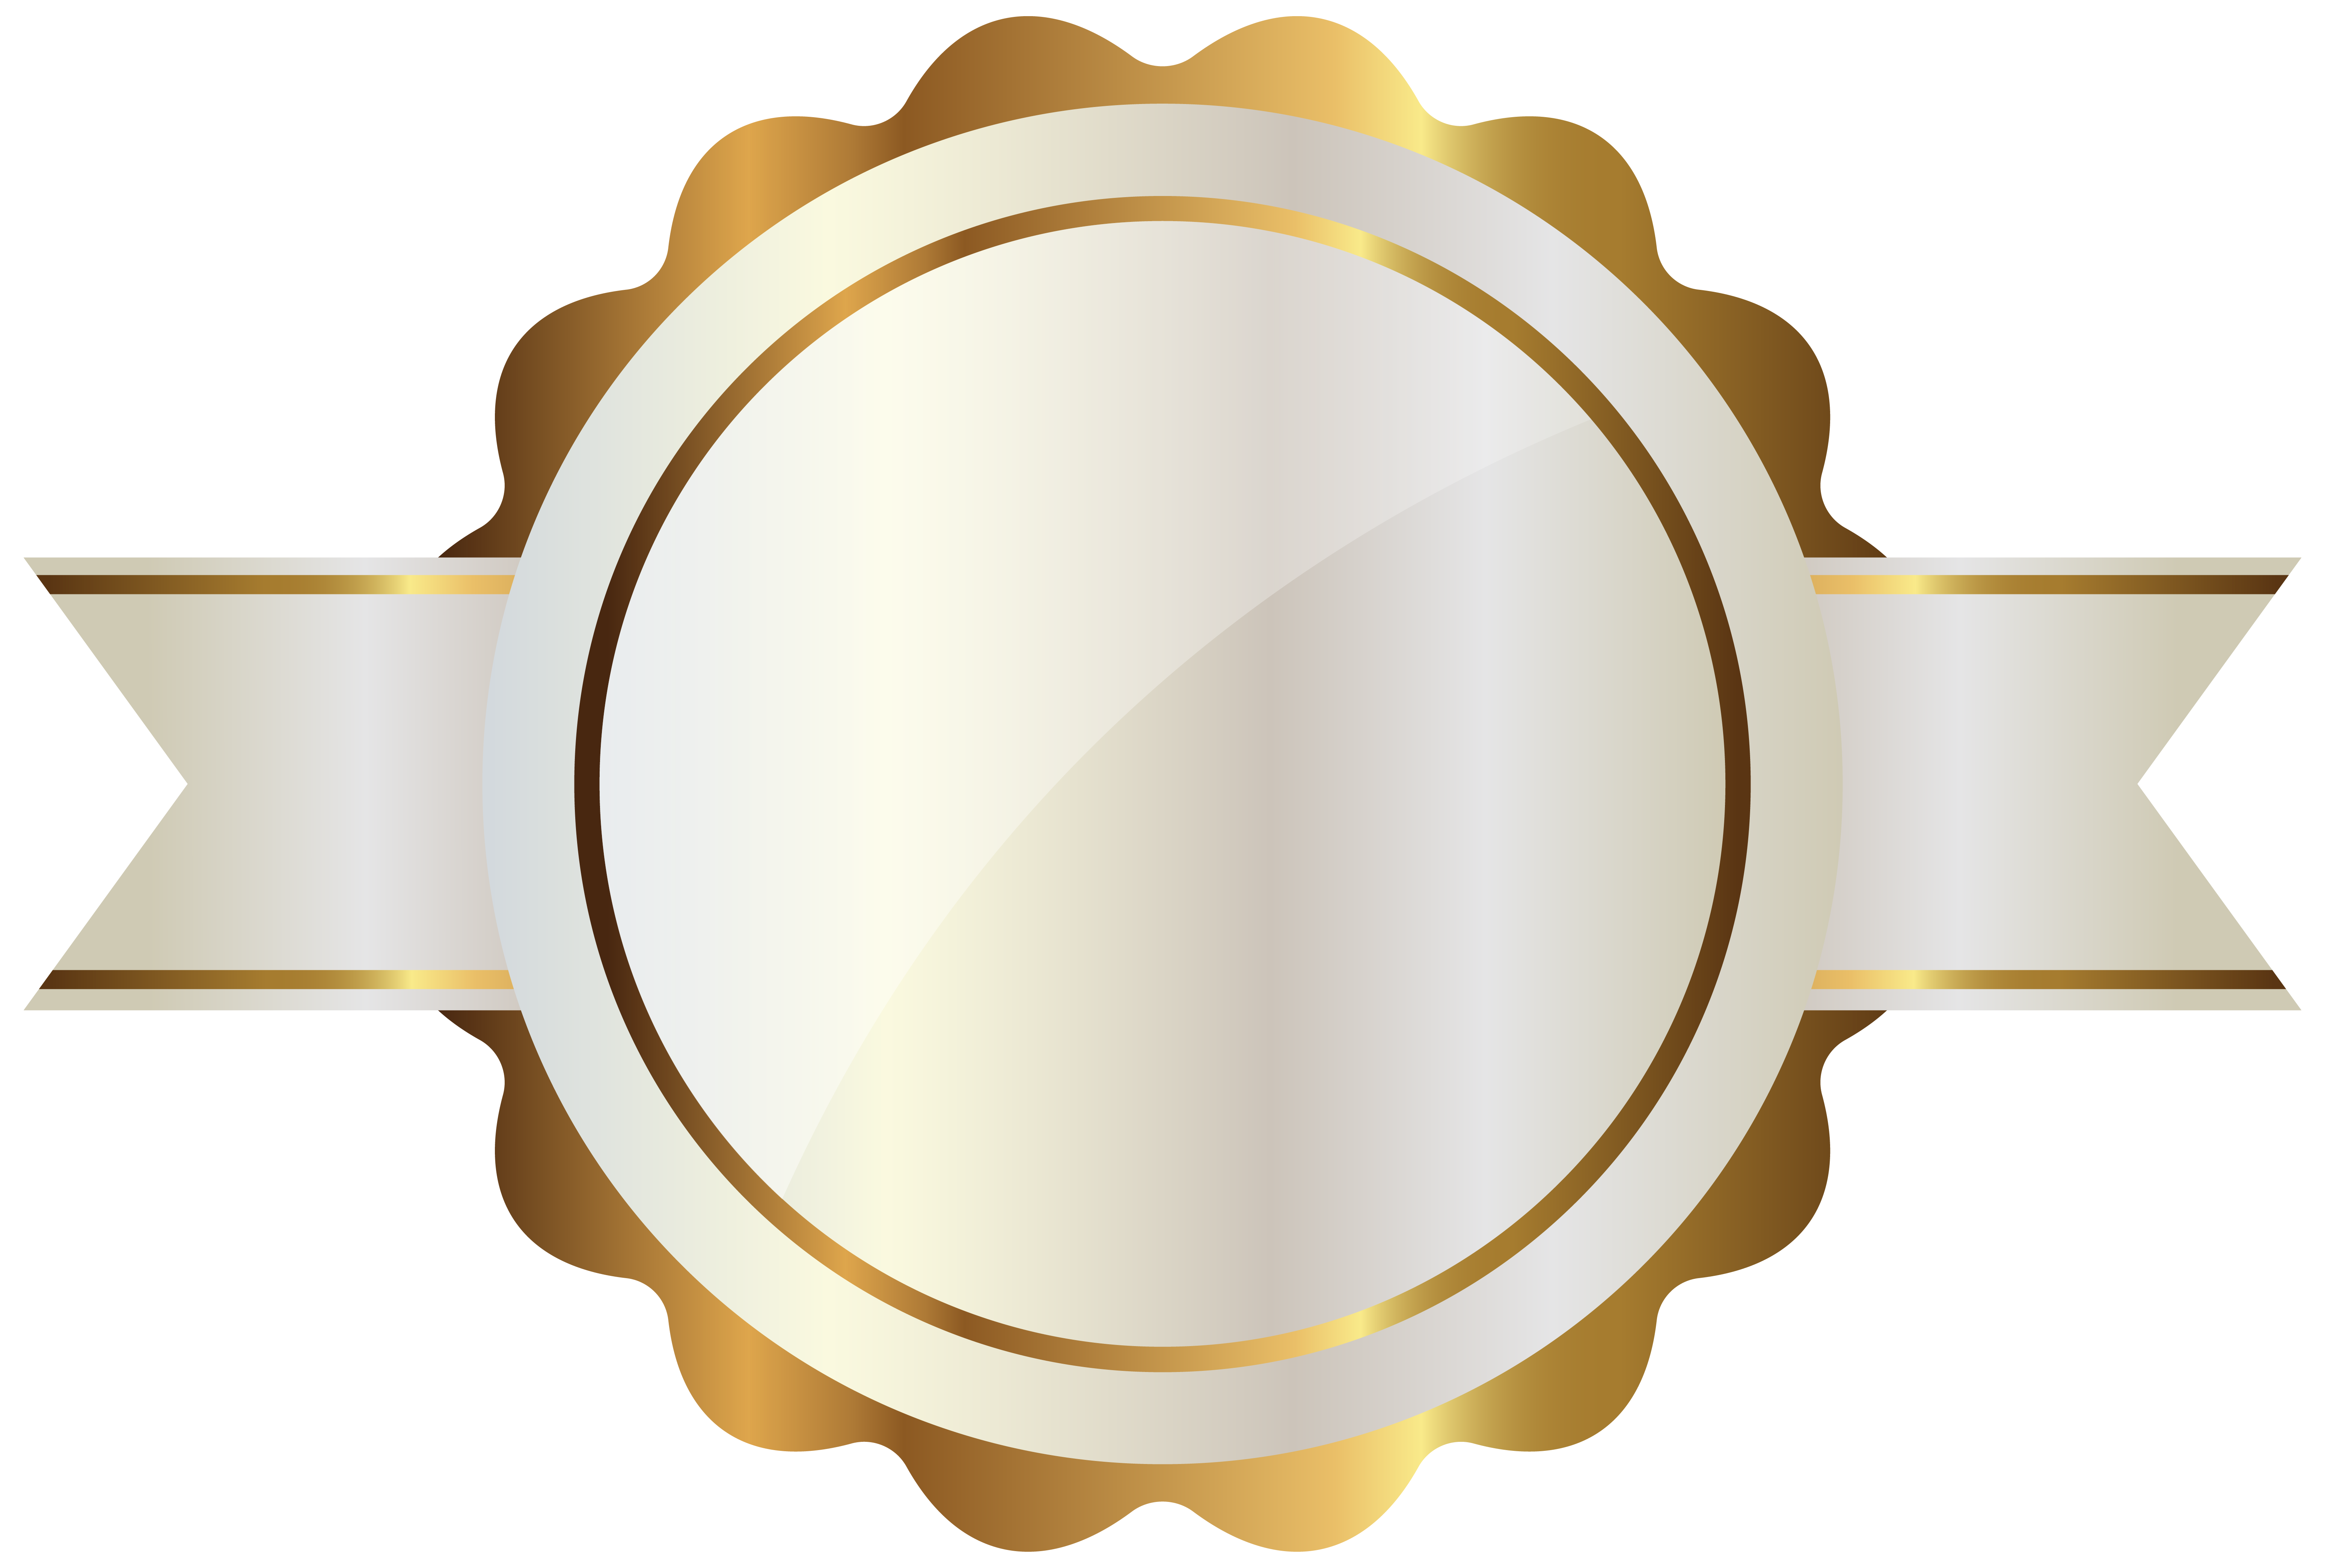 Crown with a rounded bottom clipart vector library download White Label with Gold PNG Clipart Image | баннер | Pinterest ... vector library download